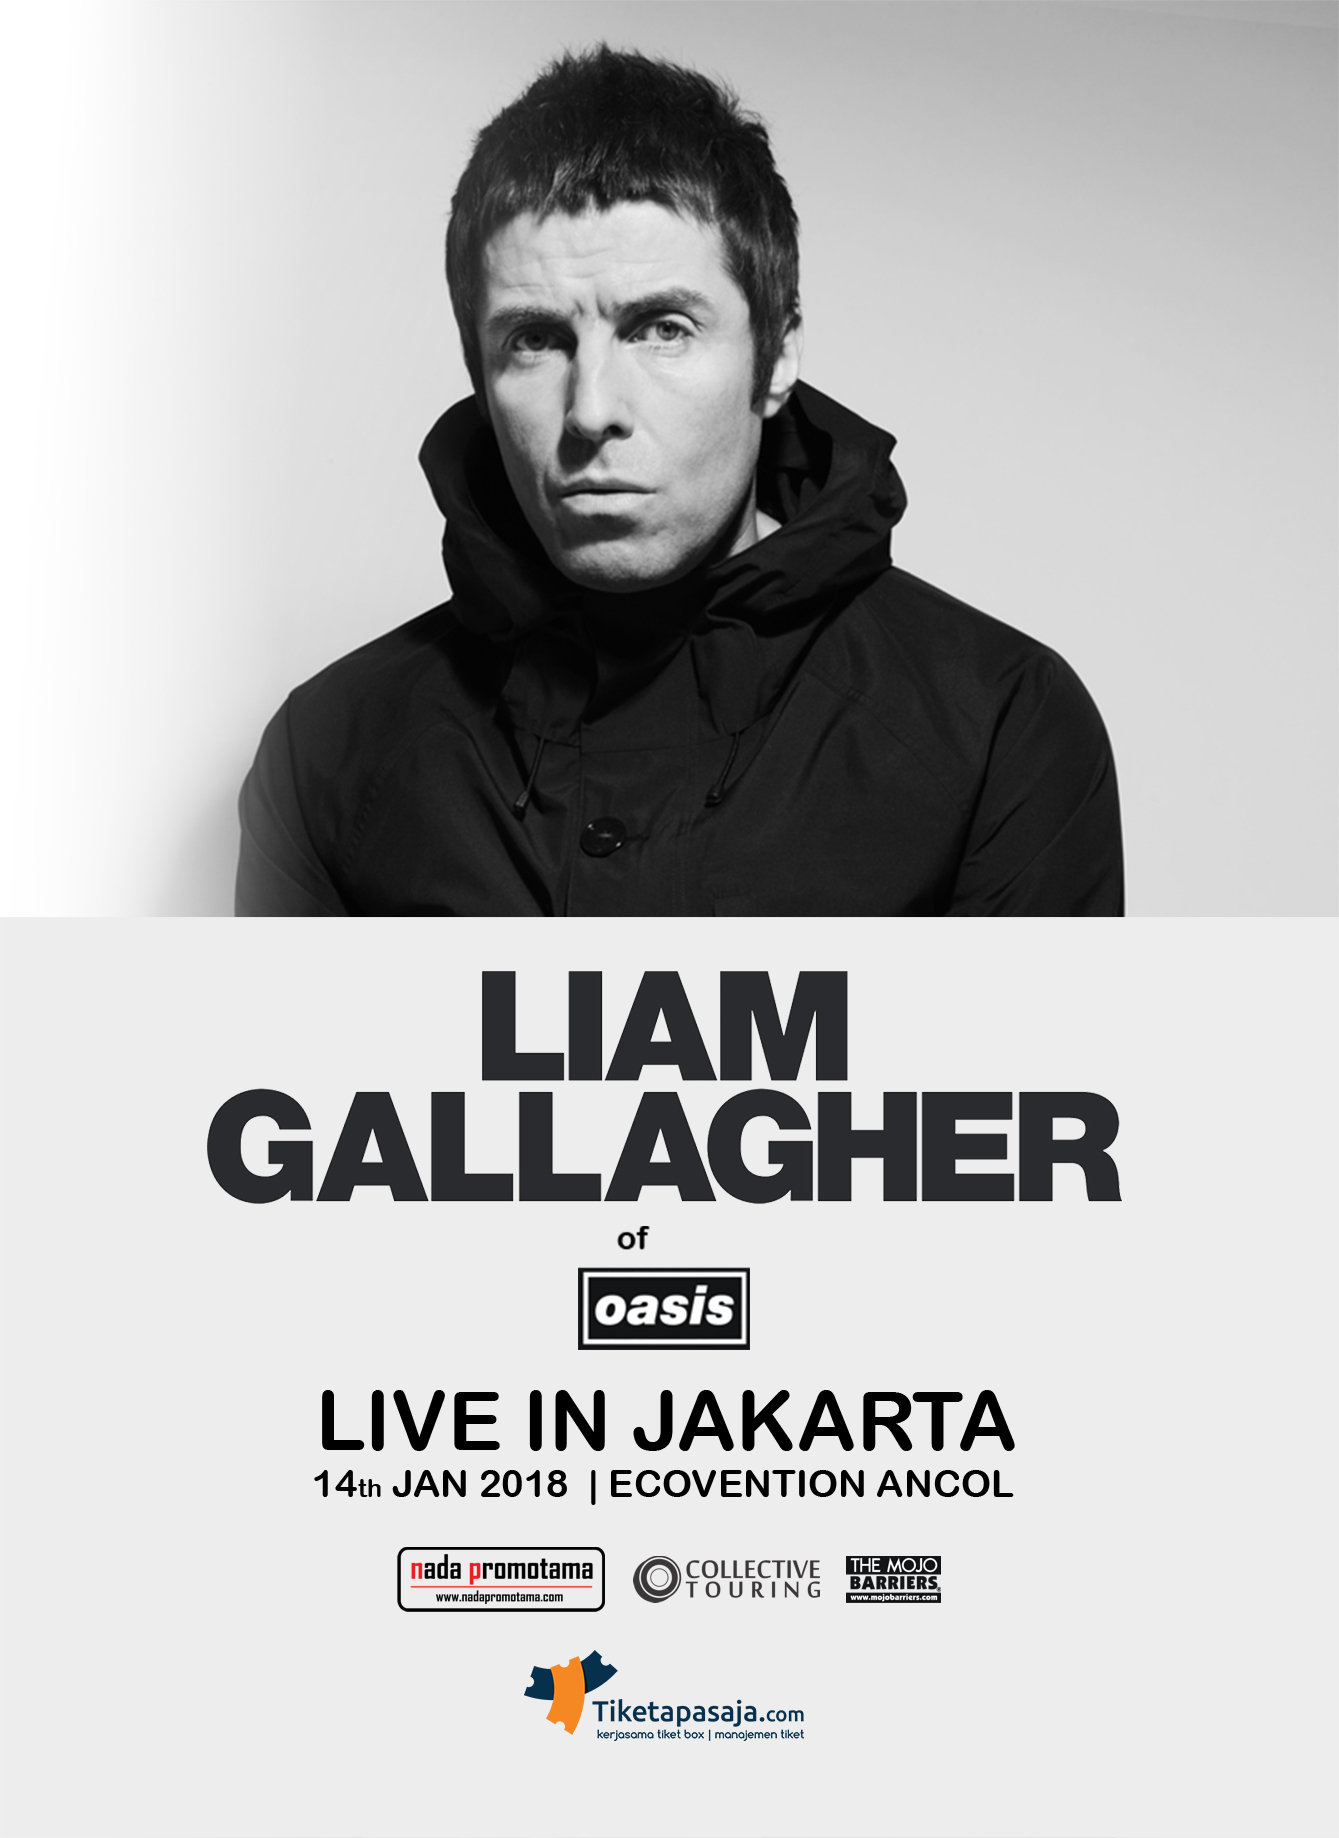 LIAM GALLAGHER OF OASIS LIVE IN JAKARTA